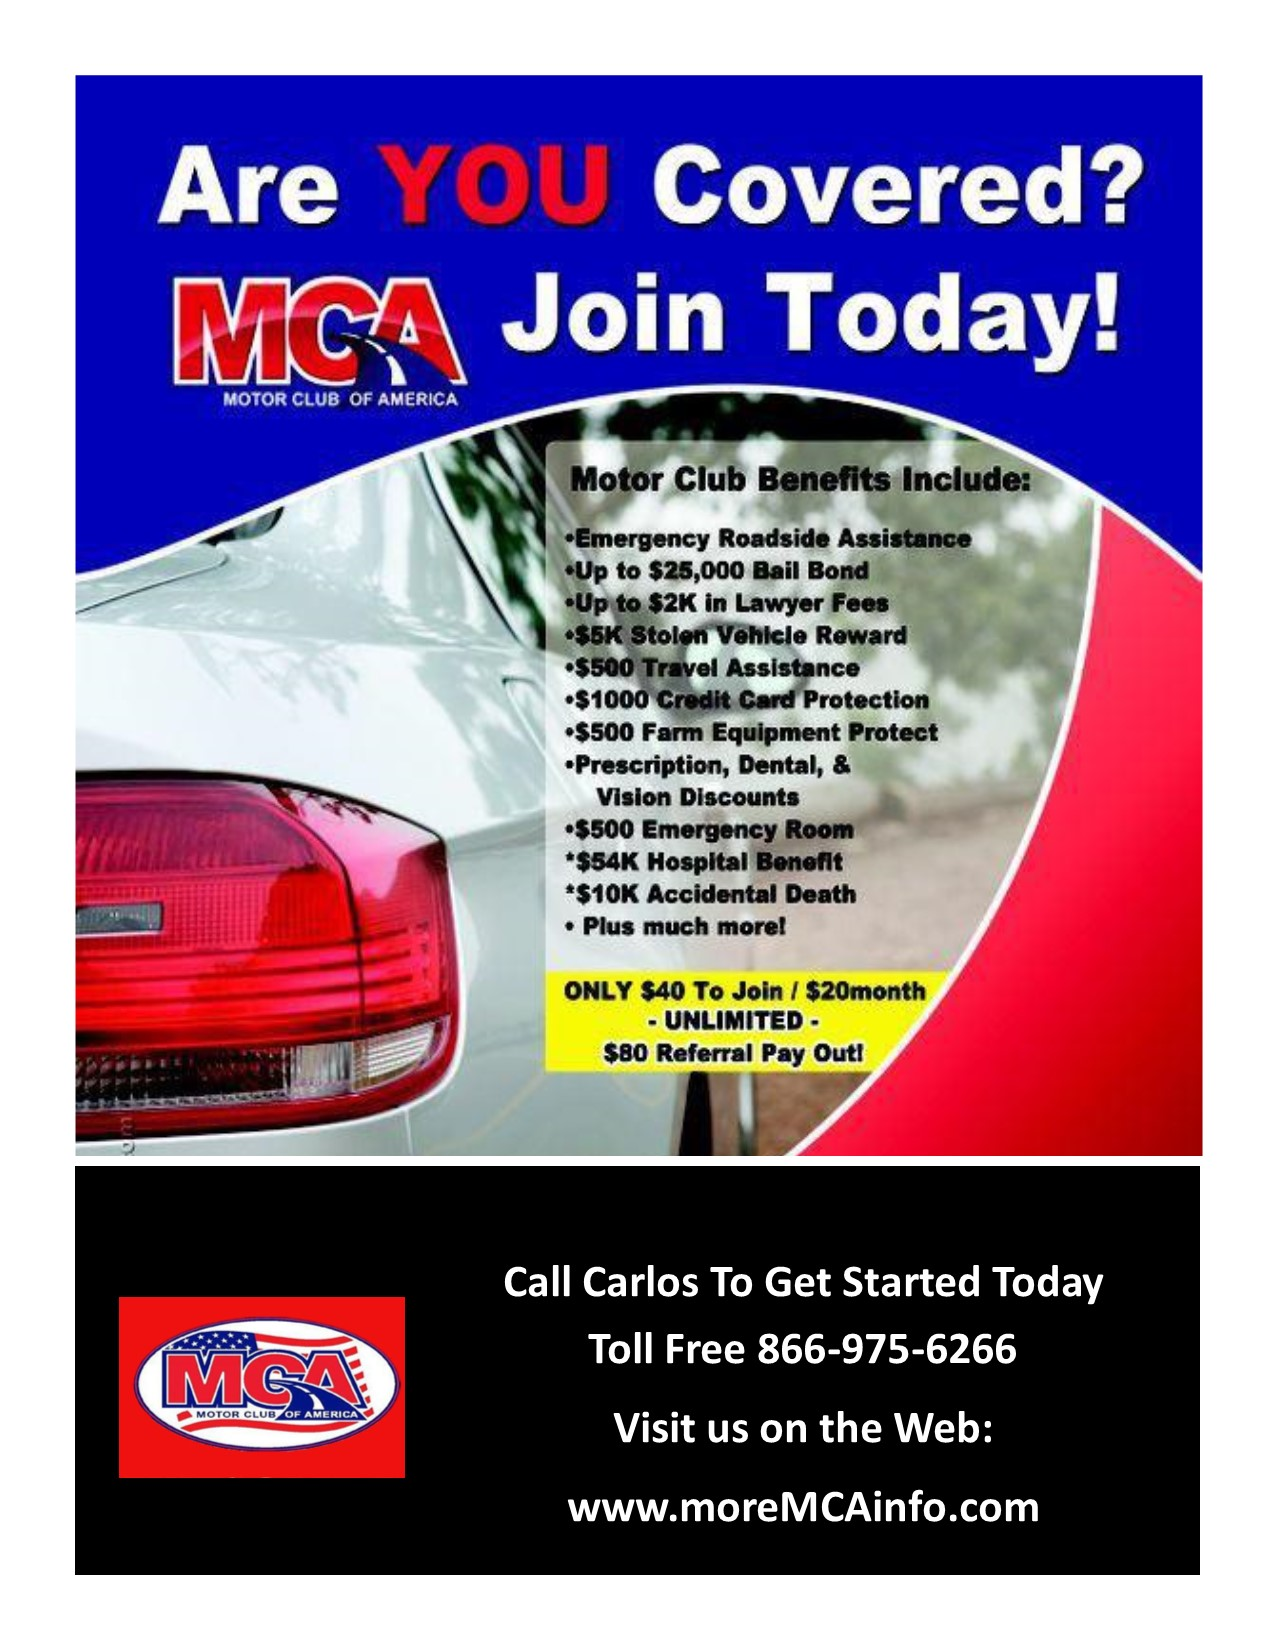 Ripoff report motor club of america mca search of for Allstate motor club roadside assistance number